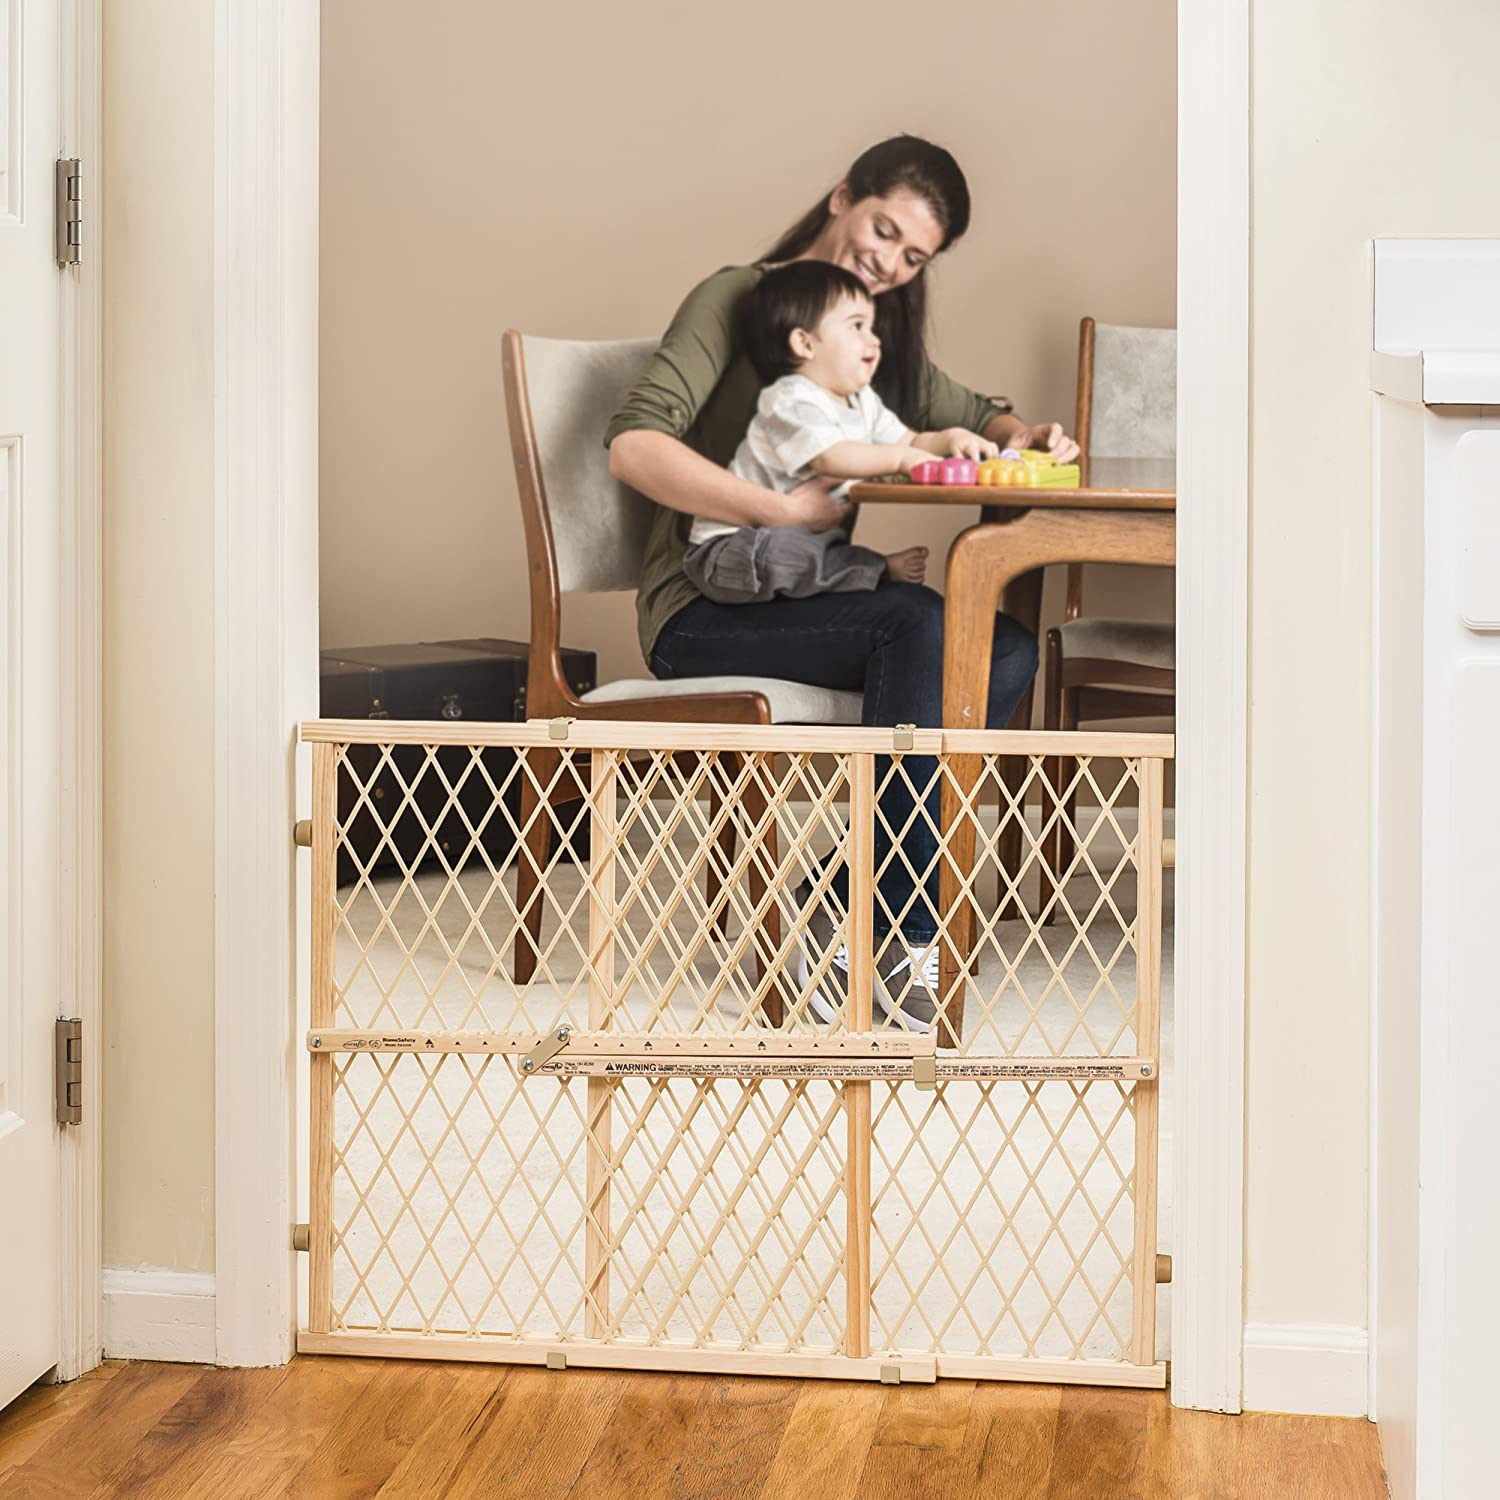 Amazon.com : Evenflo Position And Lock Wood Gate : Indoor Safety Gates :  Baby